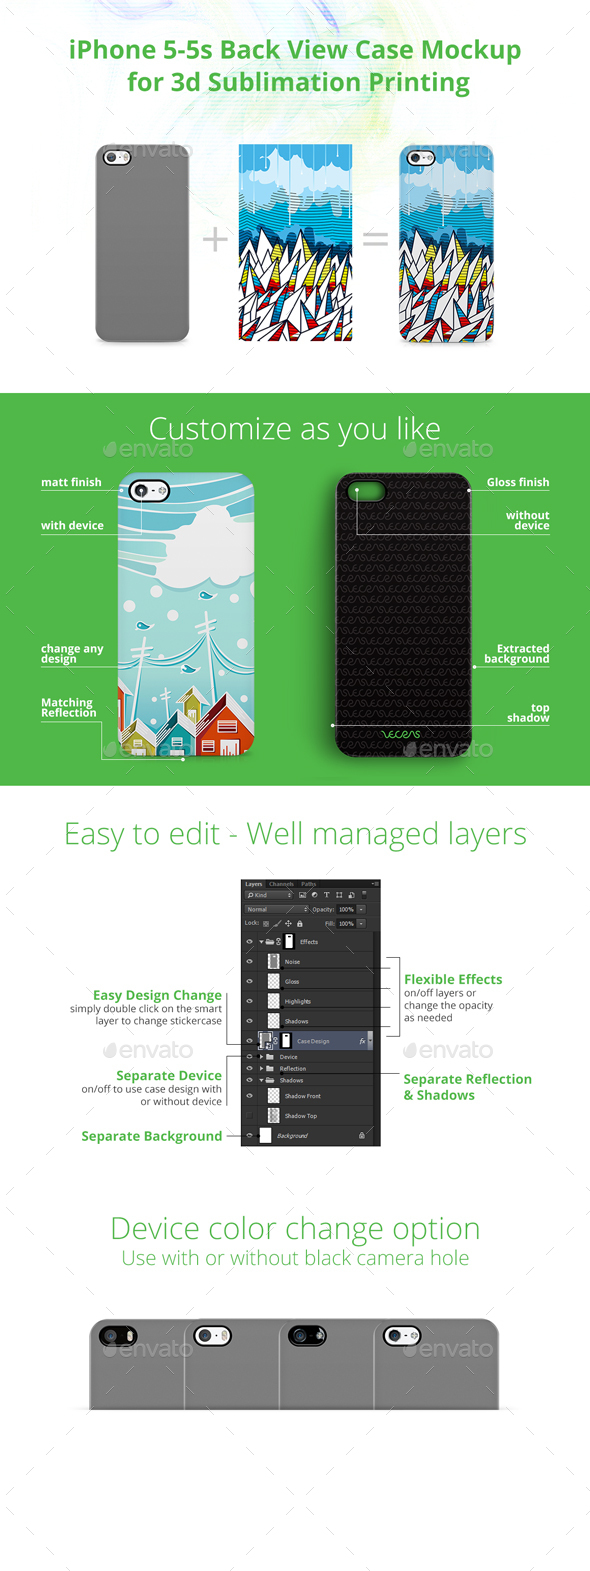 iPhone 5-5s Case Design Mockup for 3d Sublimation Printing - Back View - Mobile Displays